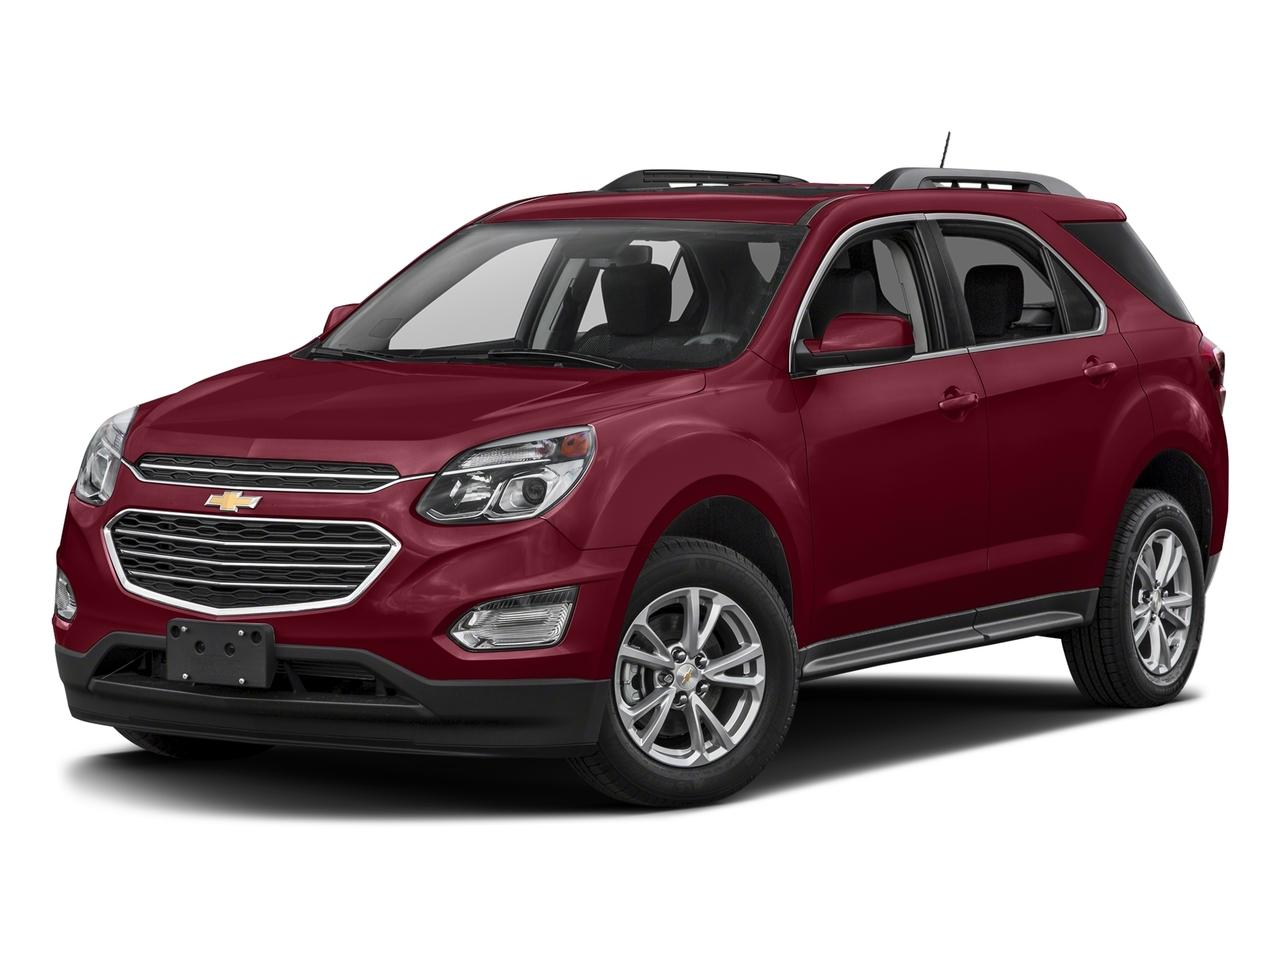 2017 Chevrolet Equinox Vehicle Photo in Plainfield, IL 60586